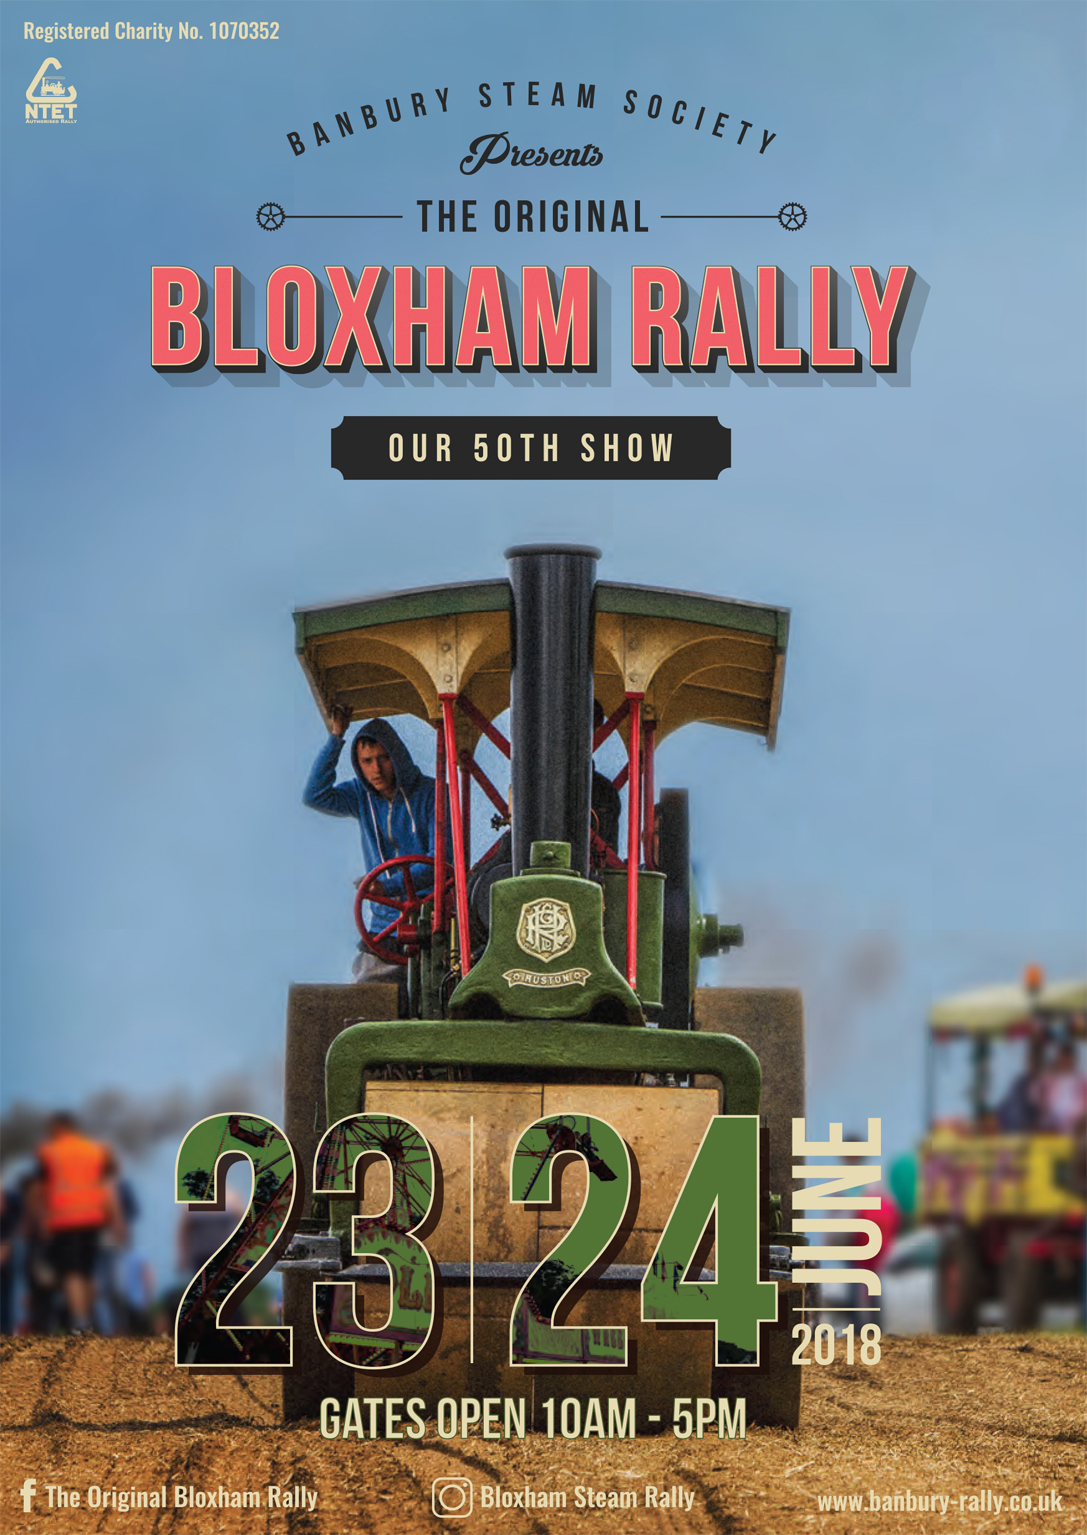 Bloxham Steam Rally